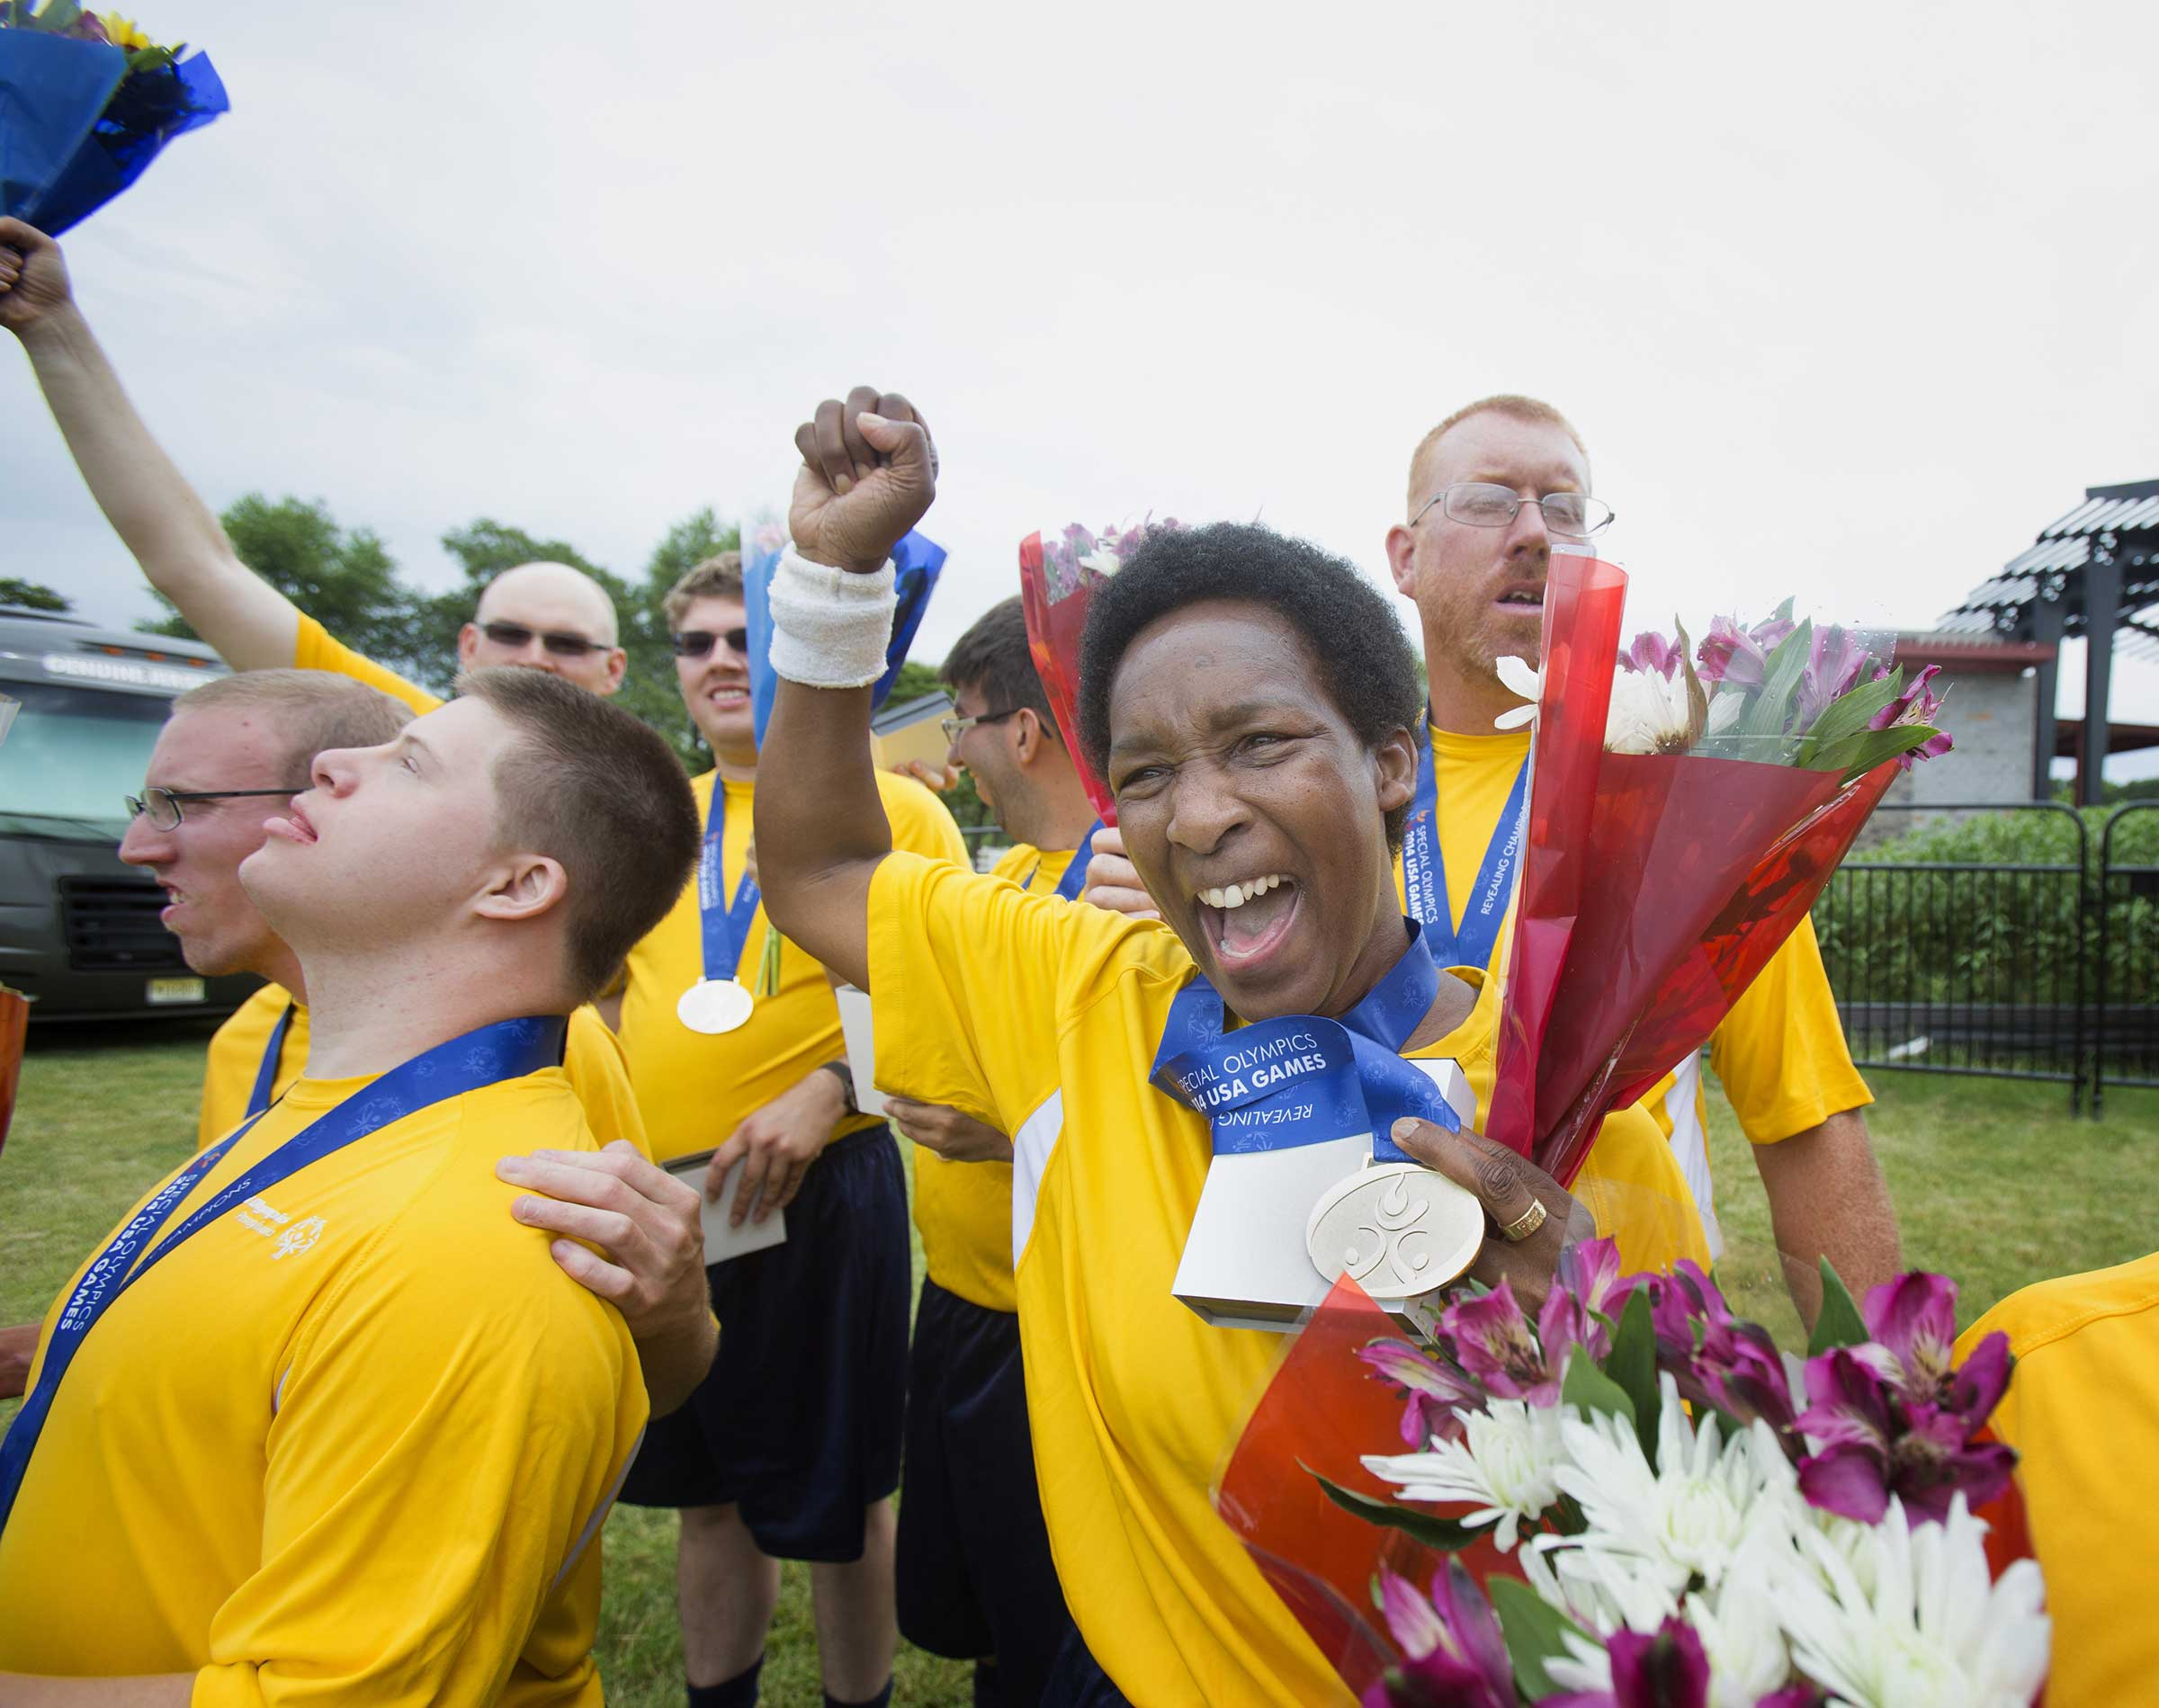 Goalie Loretta Claiborne, right, and her teammates on Pennsylvania's Traditional 5V5 Division 3 Special Olympics soccer team celebrate their 4-1 victory over Michigan in Hamilton Township, N.J., on June 19, 2014.